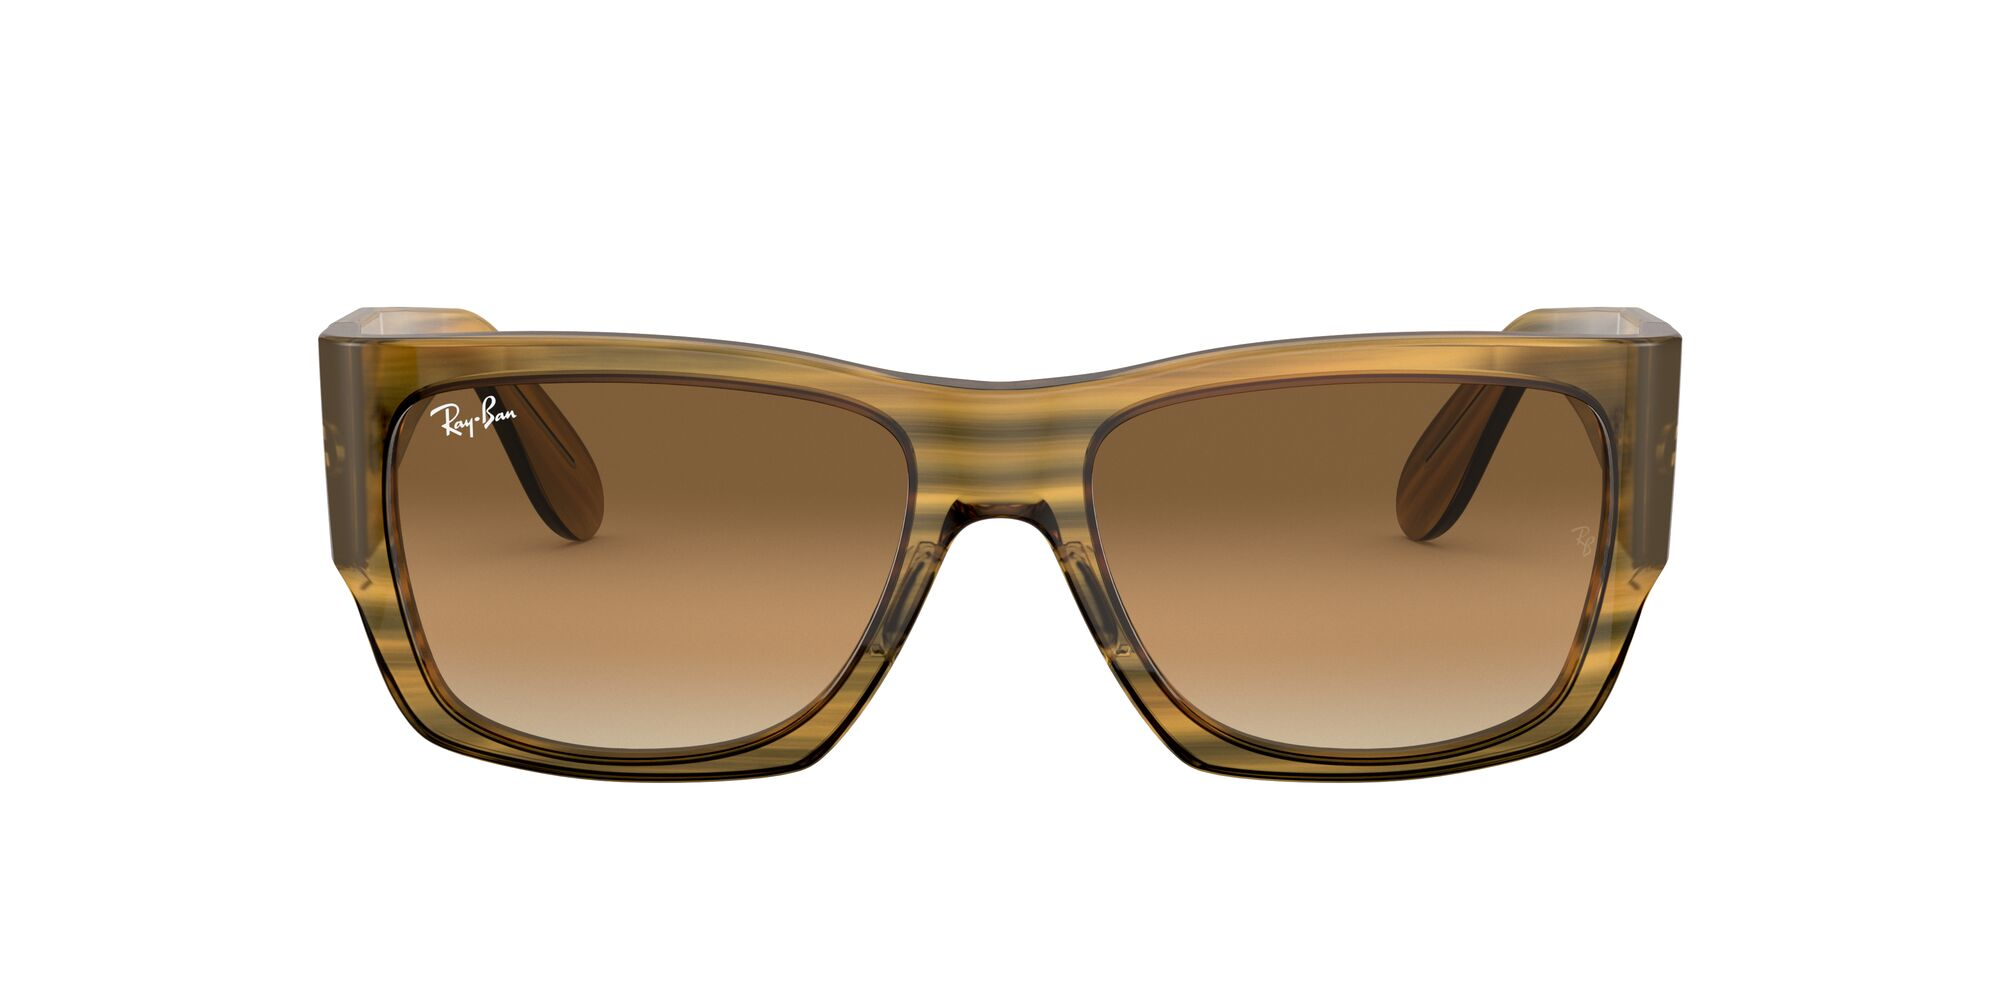 Front Ray-Ban Ray-Ban 0RB2187 131351 54/17 Geel/Bruin